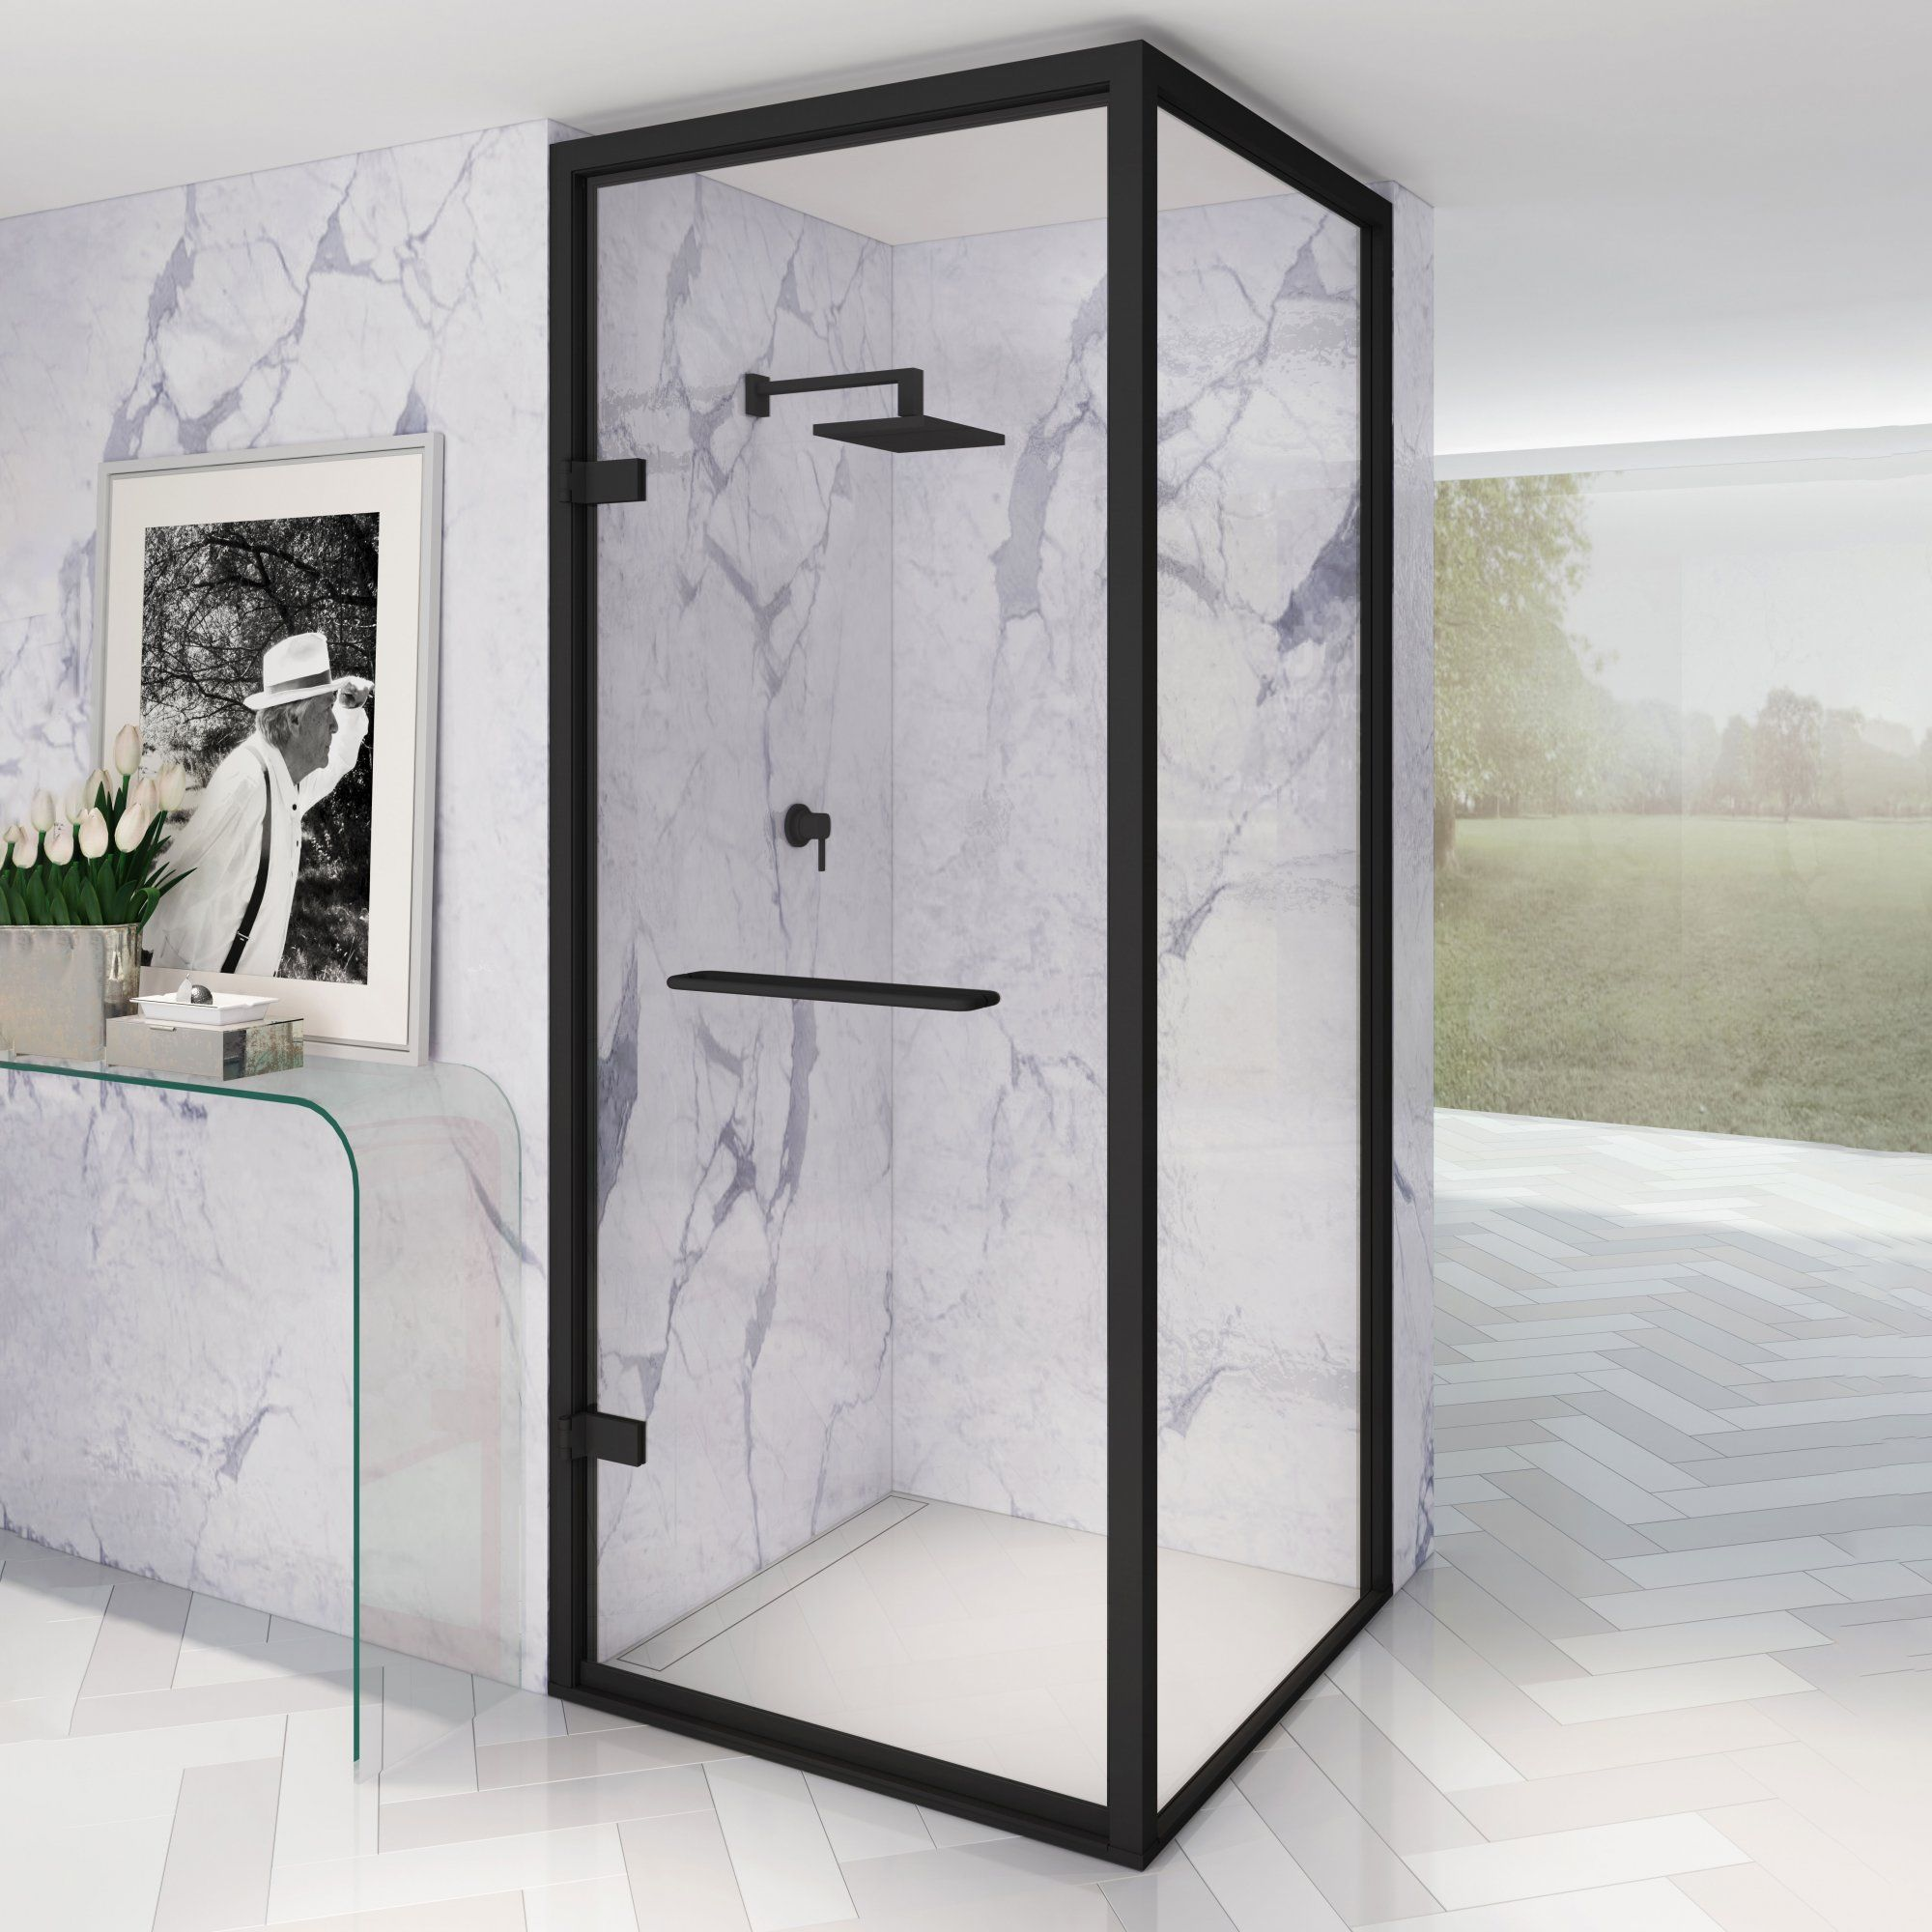 A Rule Breaker When First Launched In 1968 Unmatched In Beauty And Function Constance Allows For The D In 2020 Framed Shower Enclosures Framed Shower Shower Enclosure